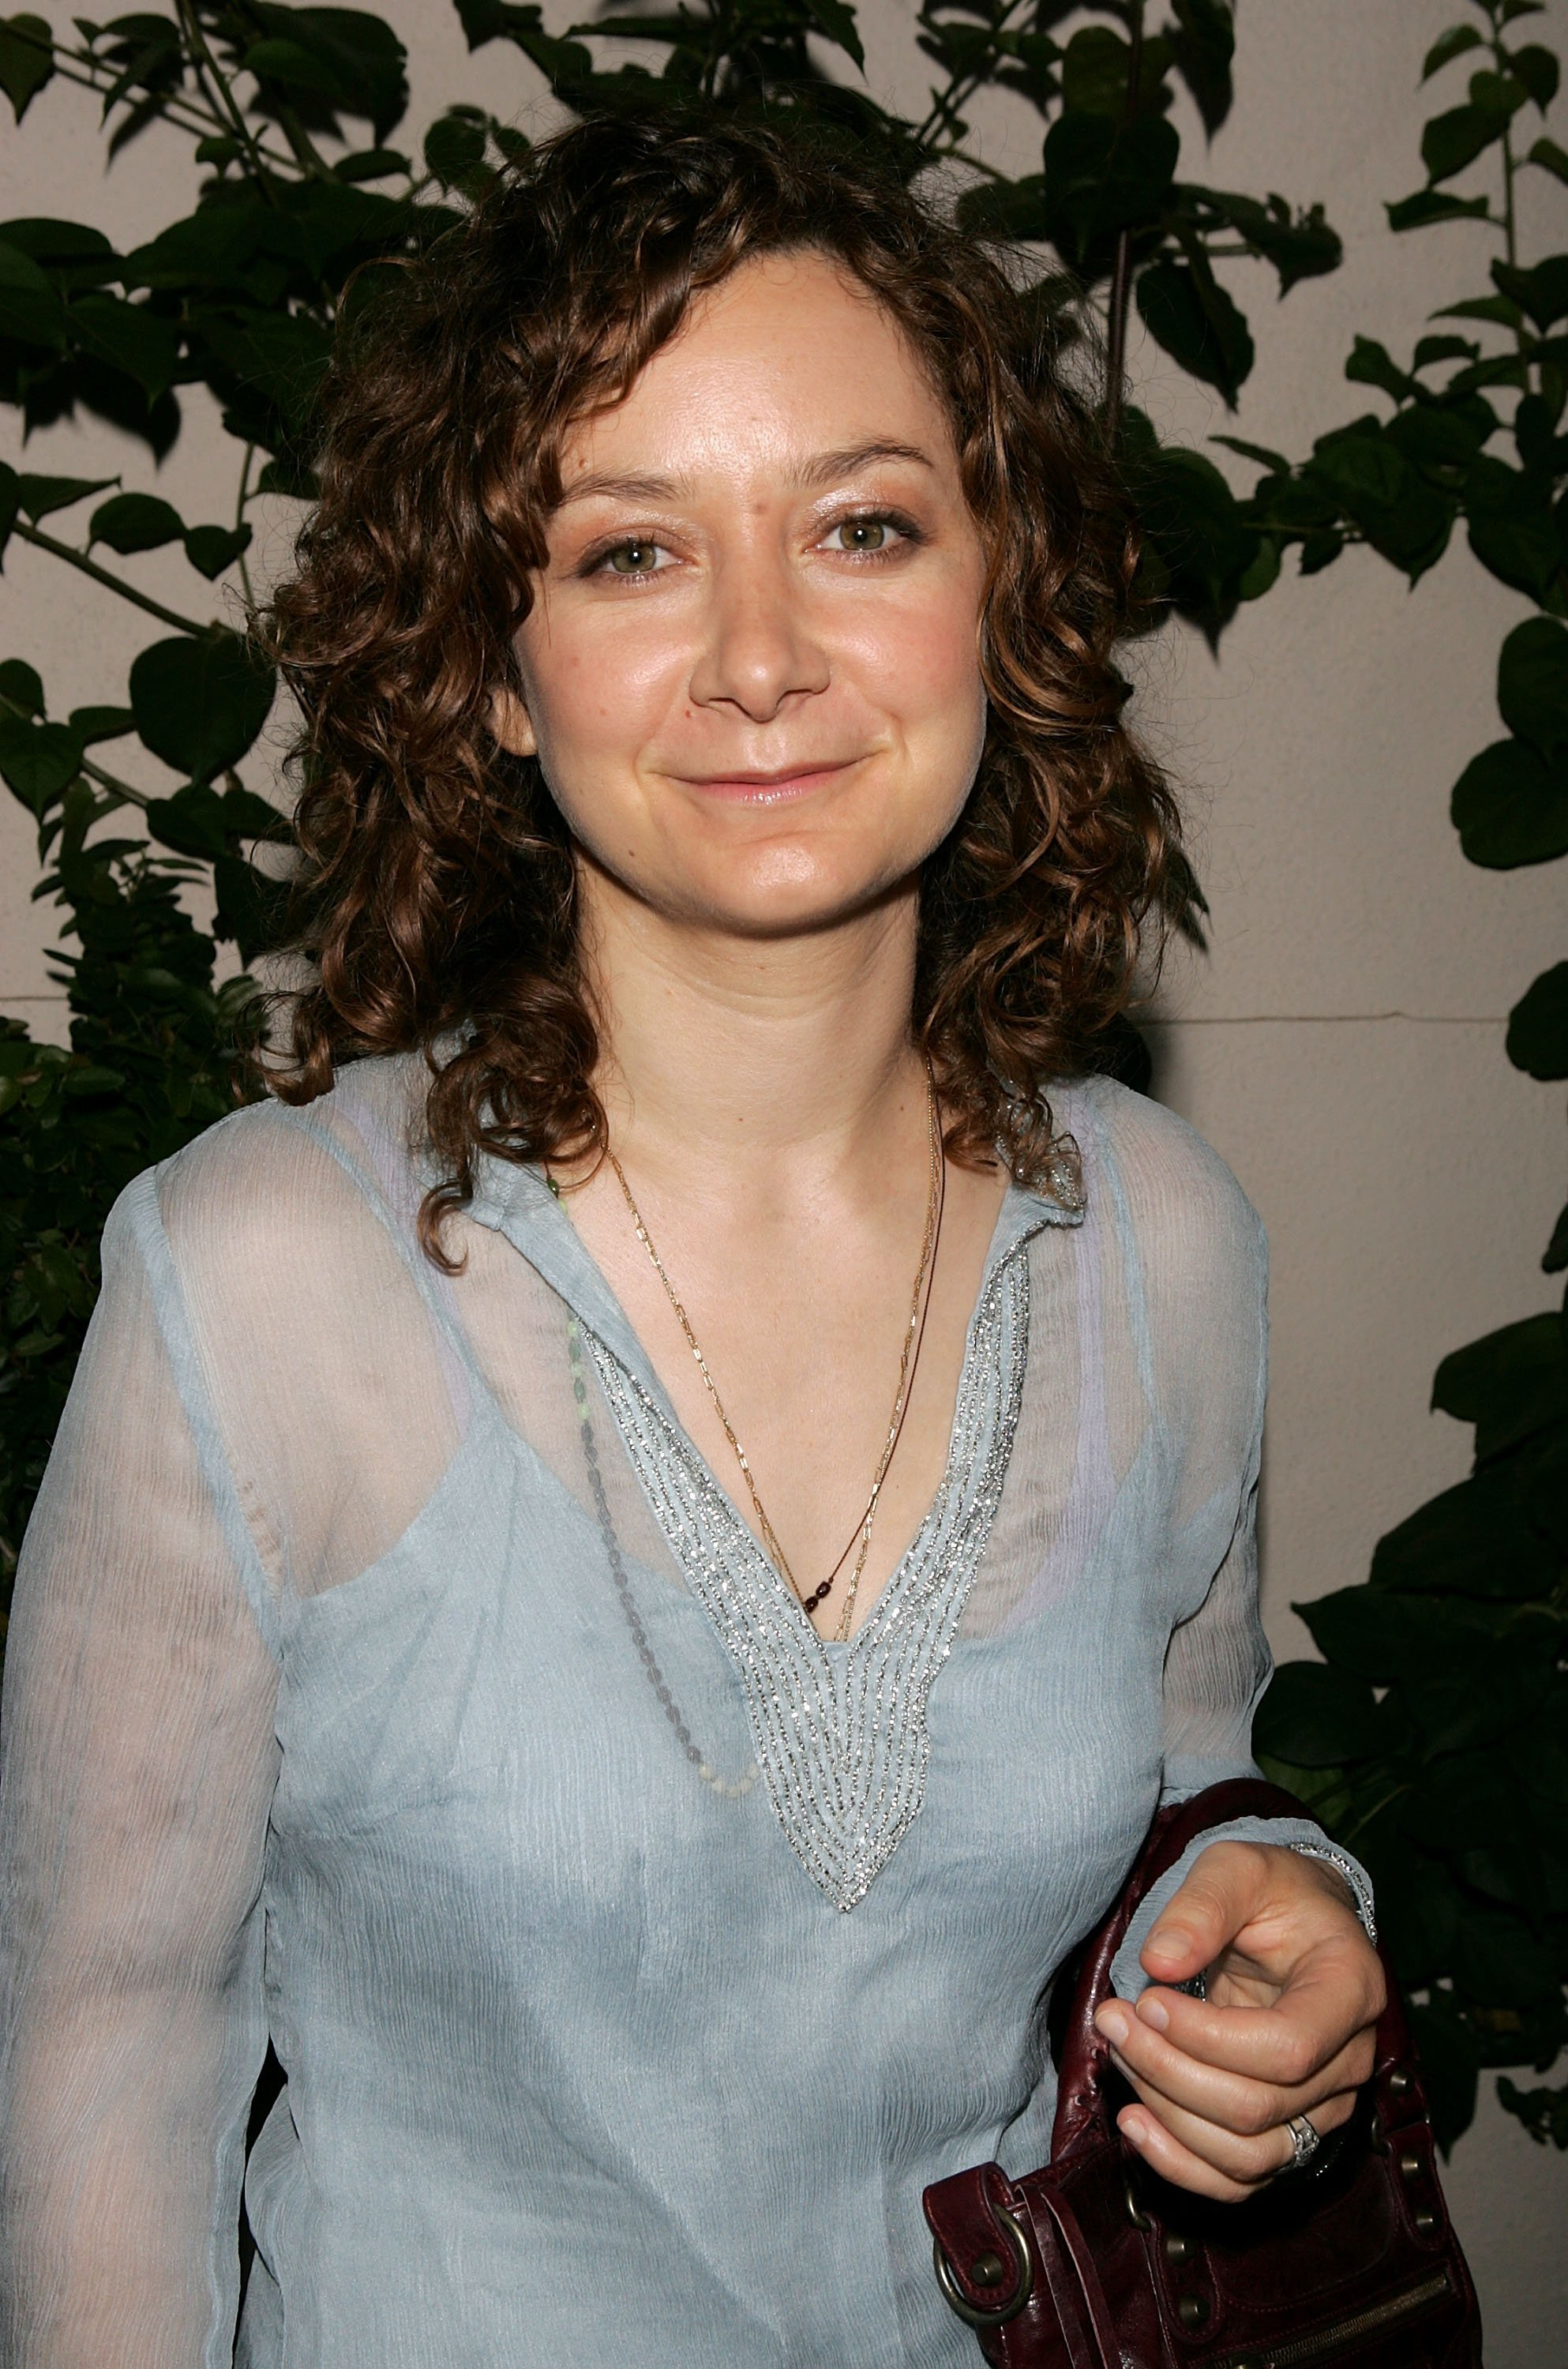 Sara Gilbert attends WB Network's 2005 All Star Celebration at The Cabana Club in Los Angeles in July 2005 | Photo: Getty Images